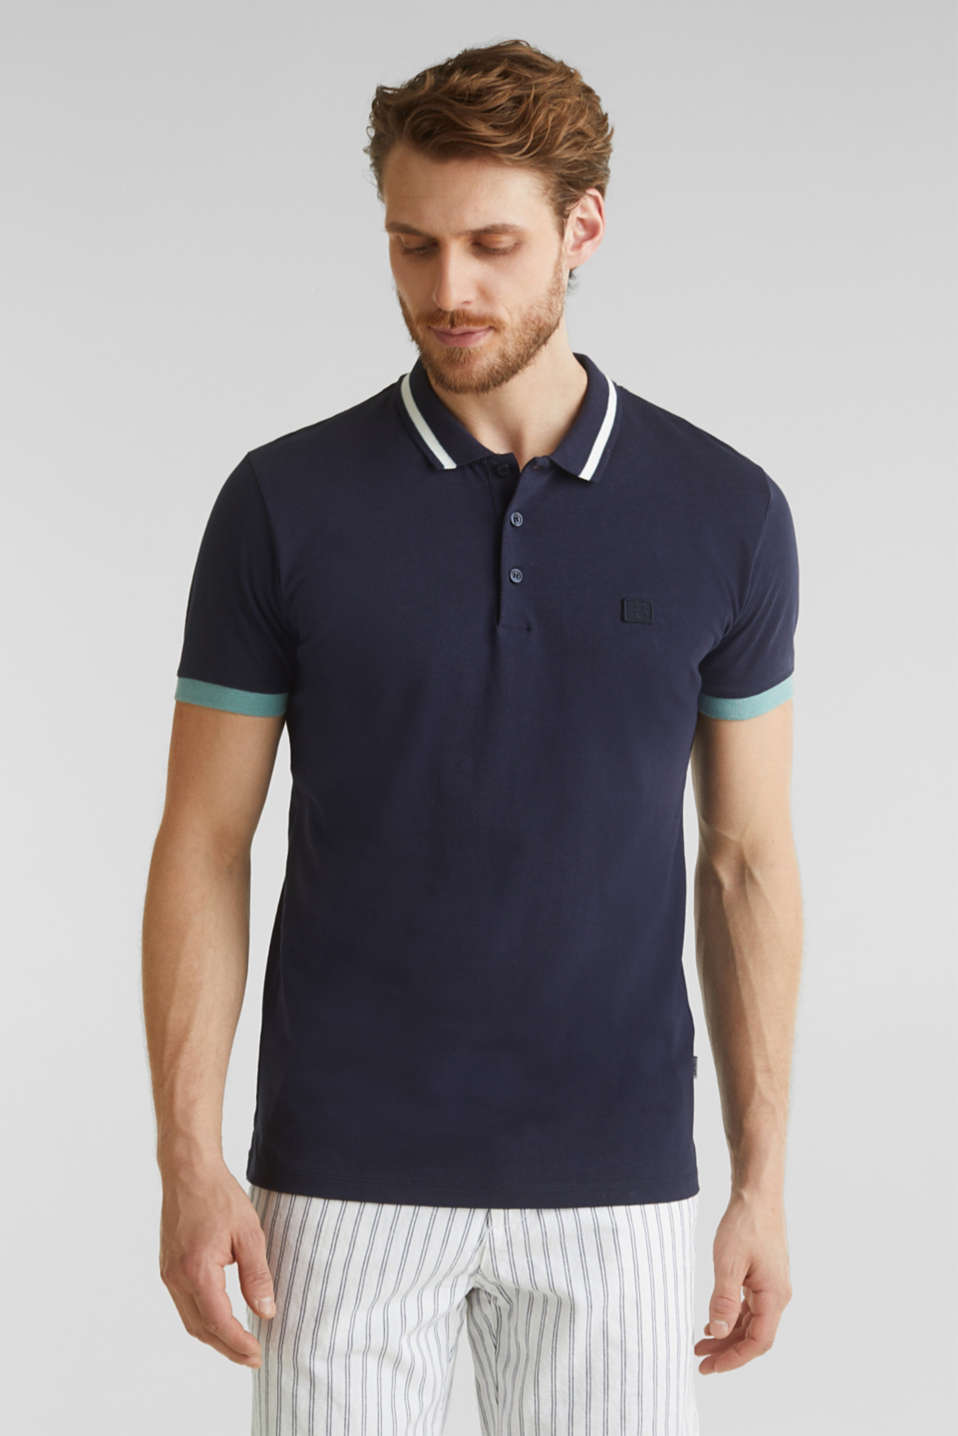 Esprit - With linen: jersey polo shirt with contrasts